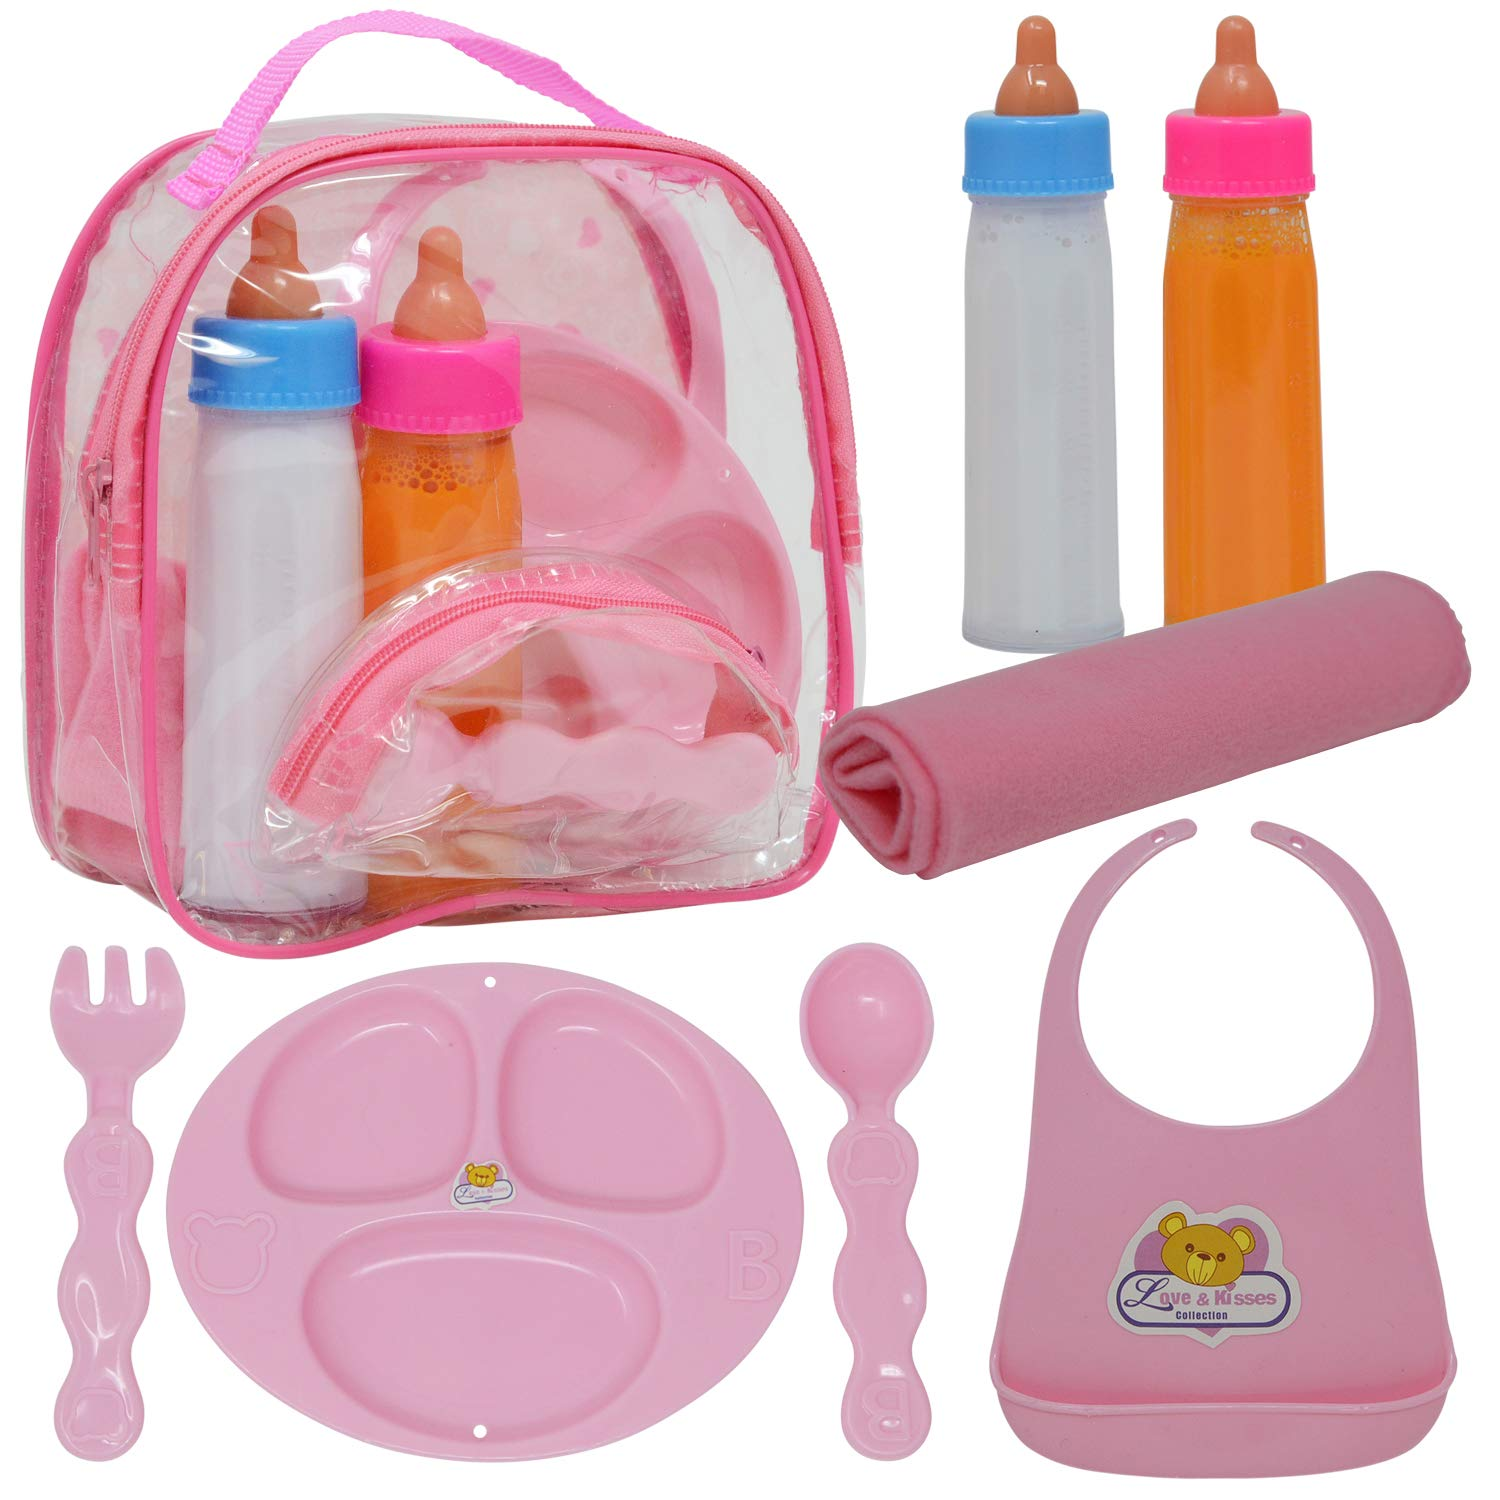 Baby Doll Accessories,Doll Magic Bottles and Doll Feeding Set in a Bag